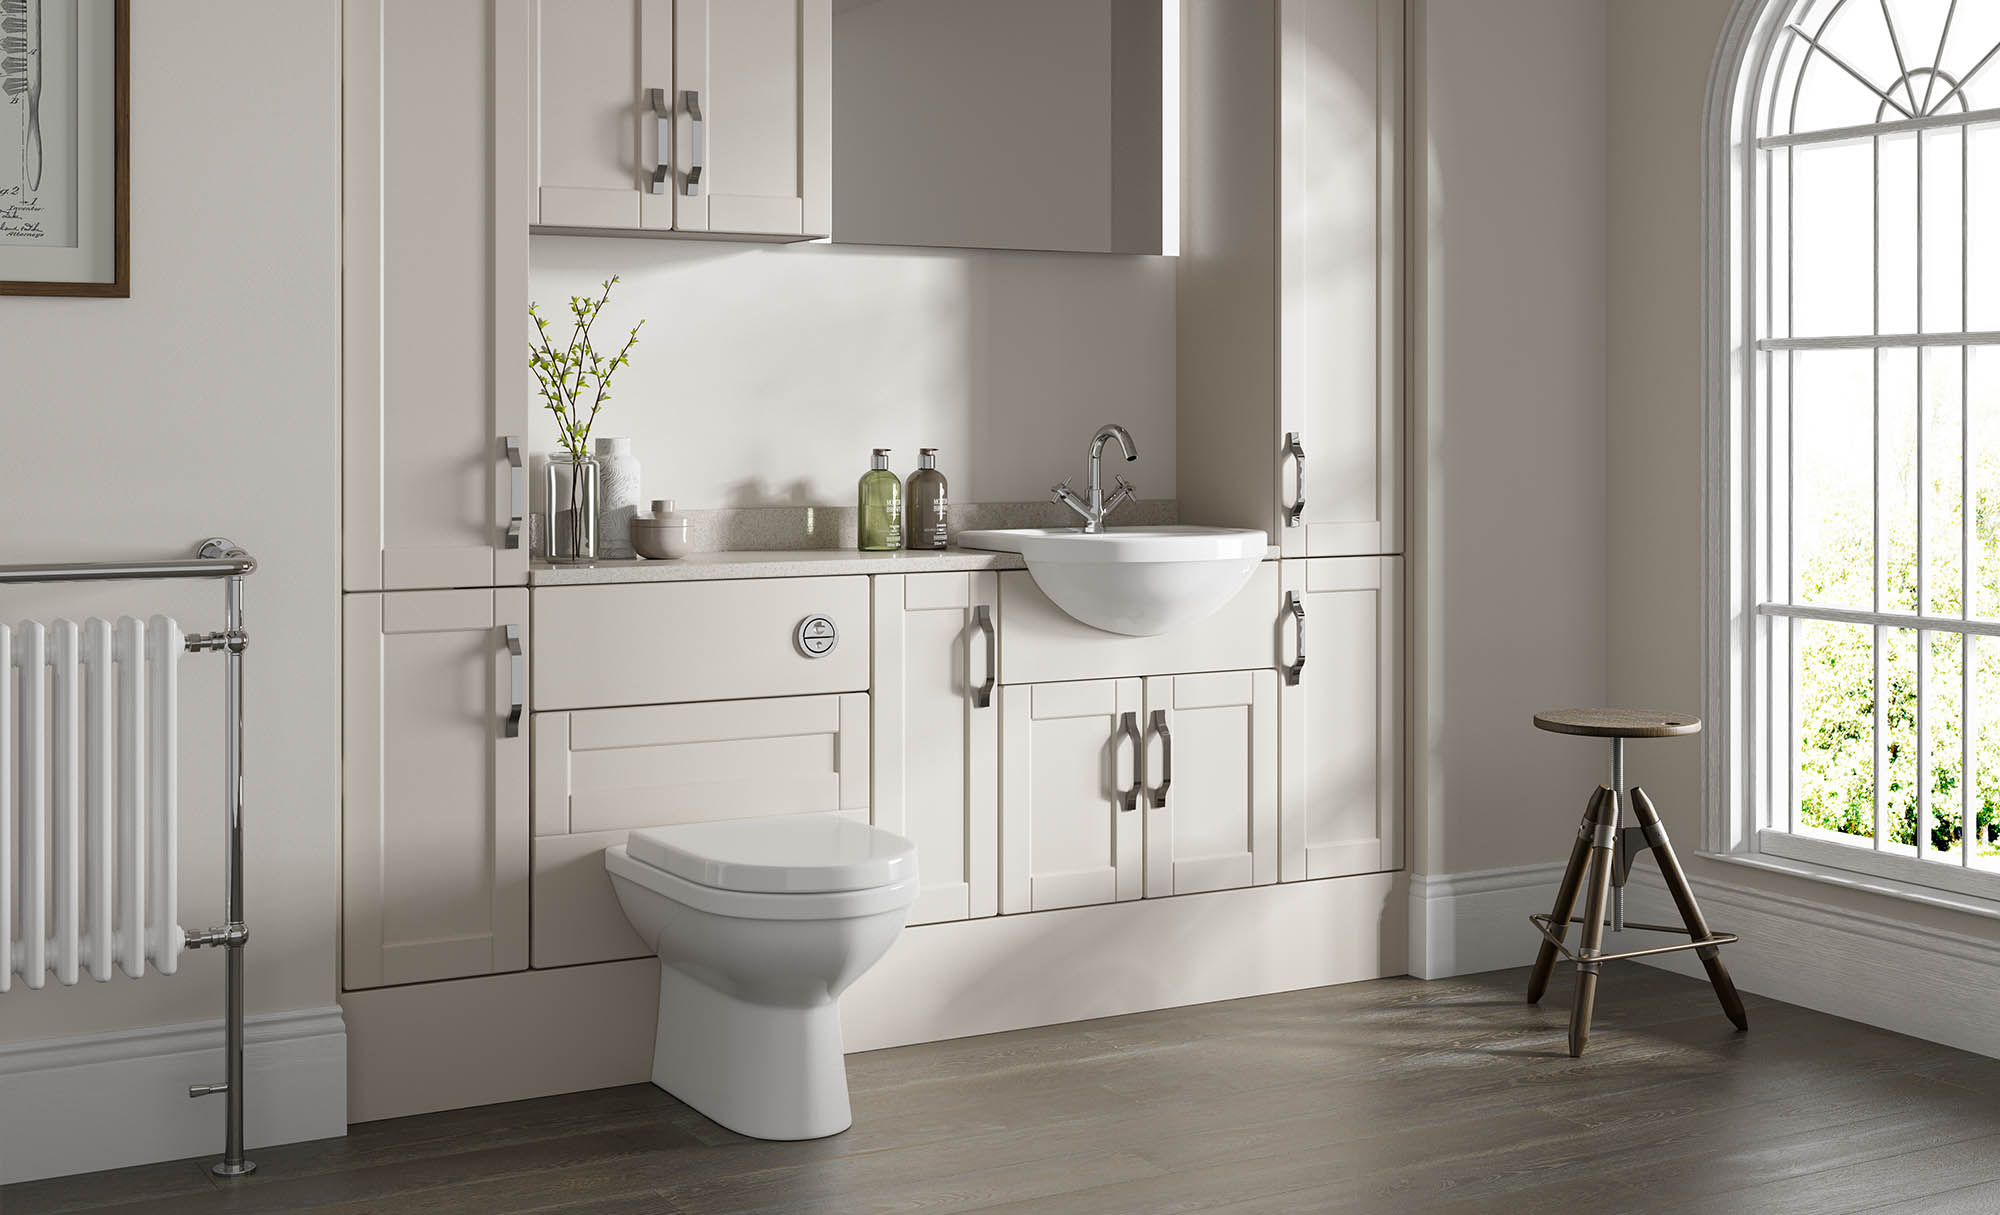 Gaddesby Bathrooms Cologne Mussel